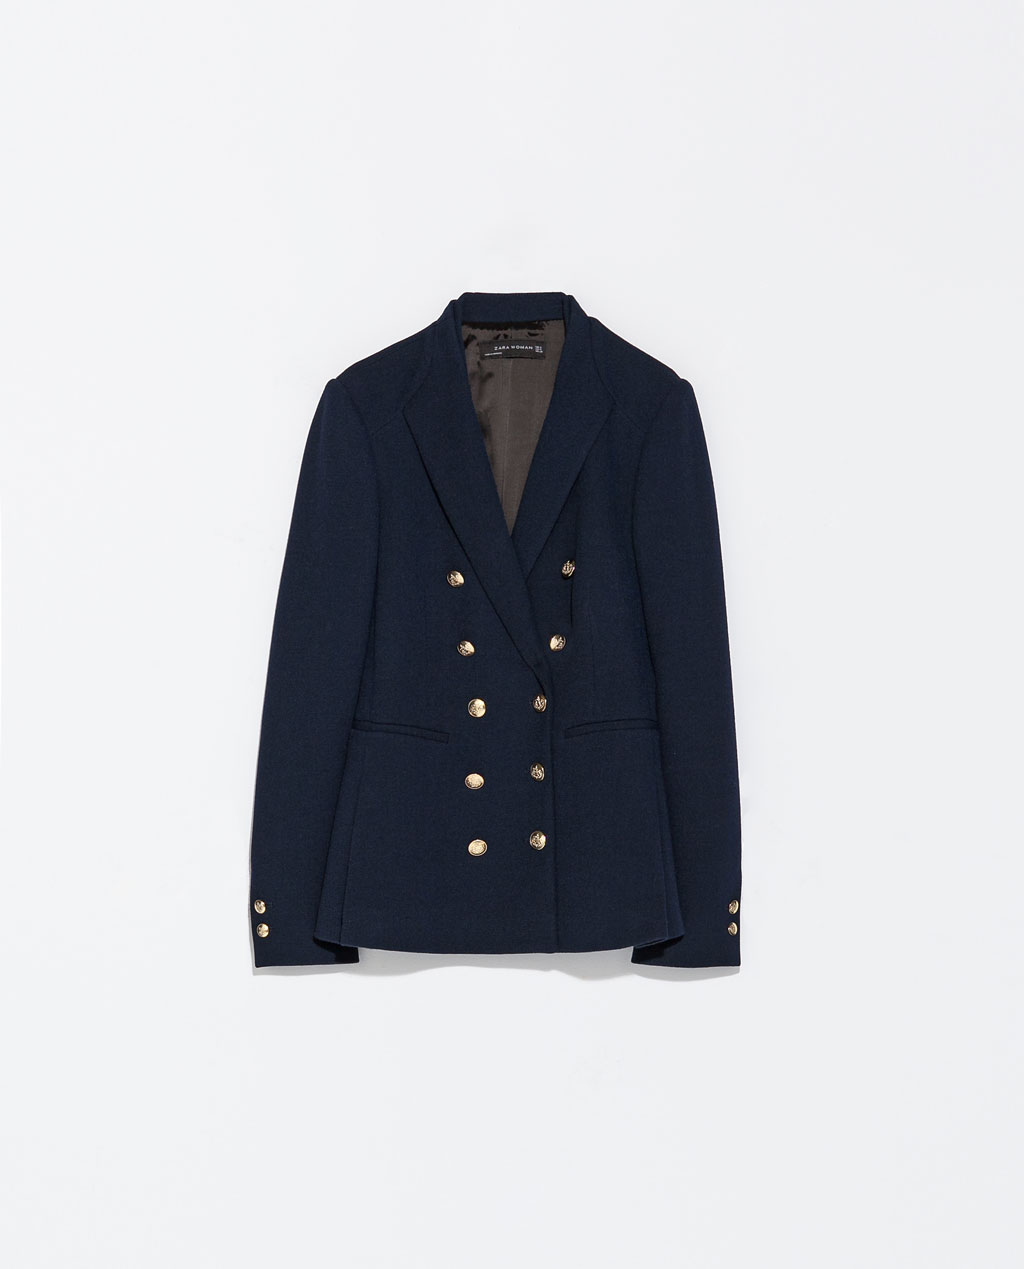 Zara Double Breasted Blazer